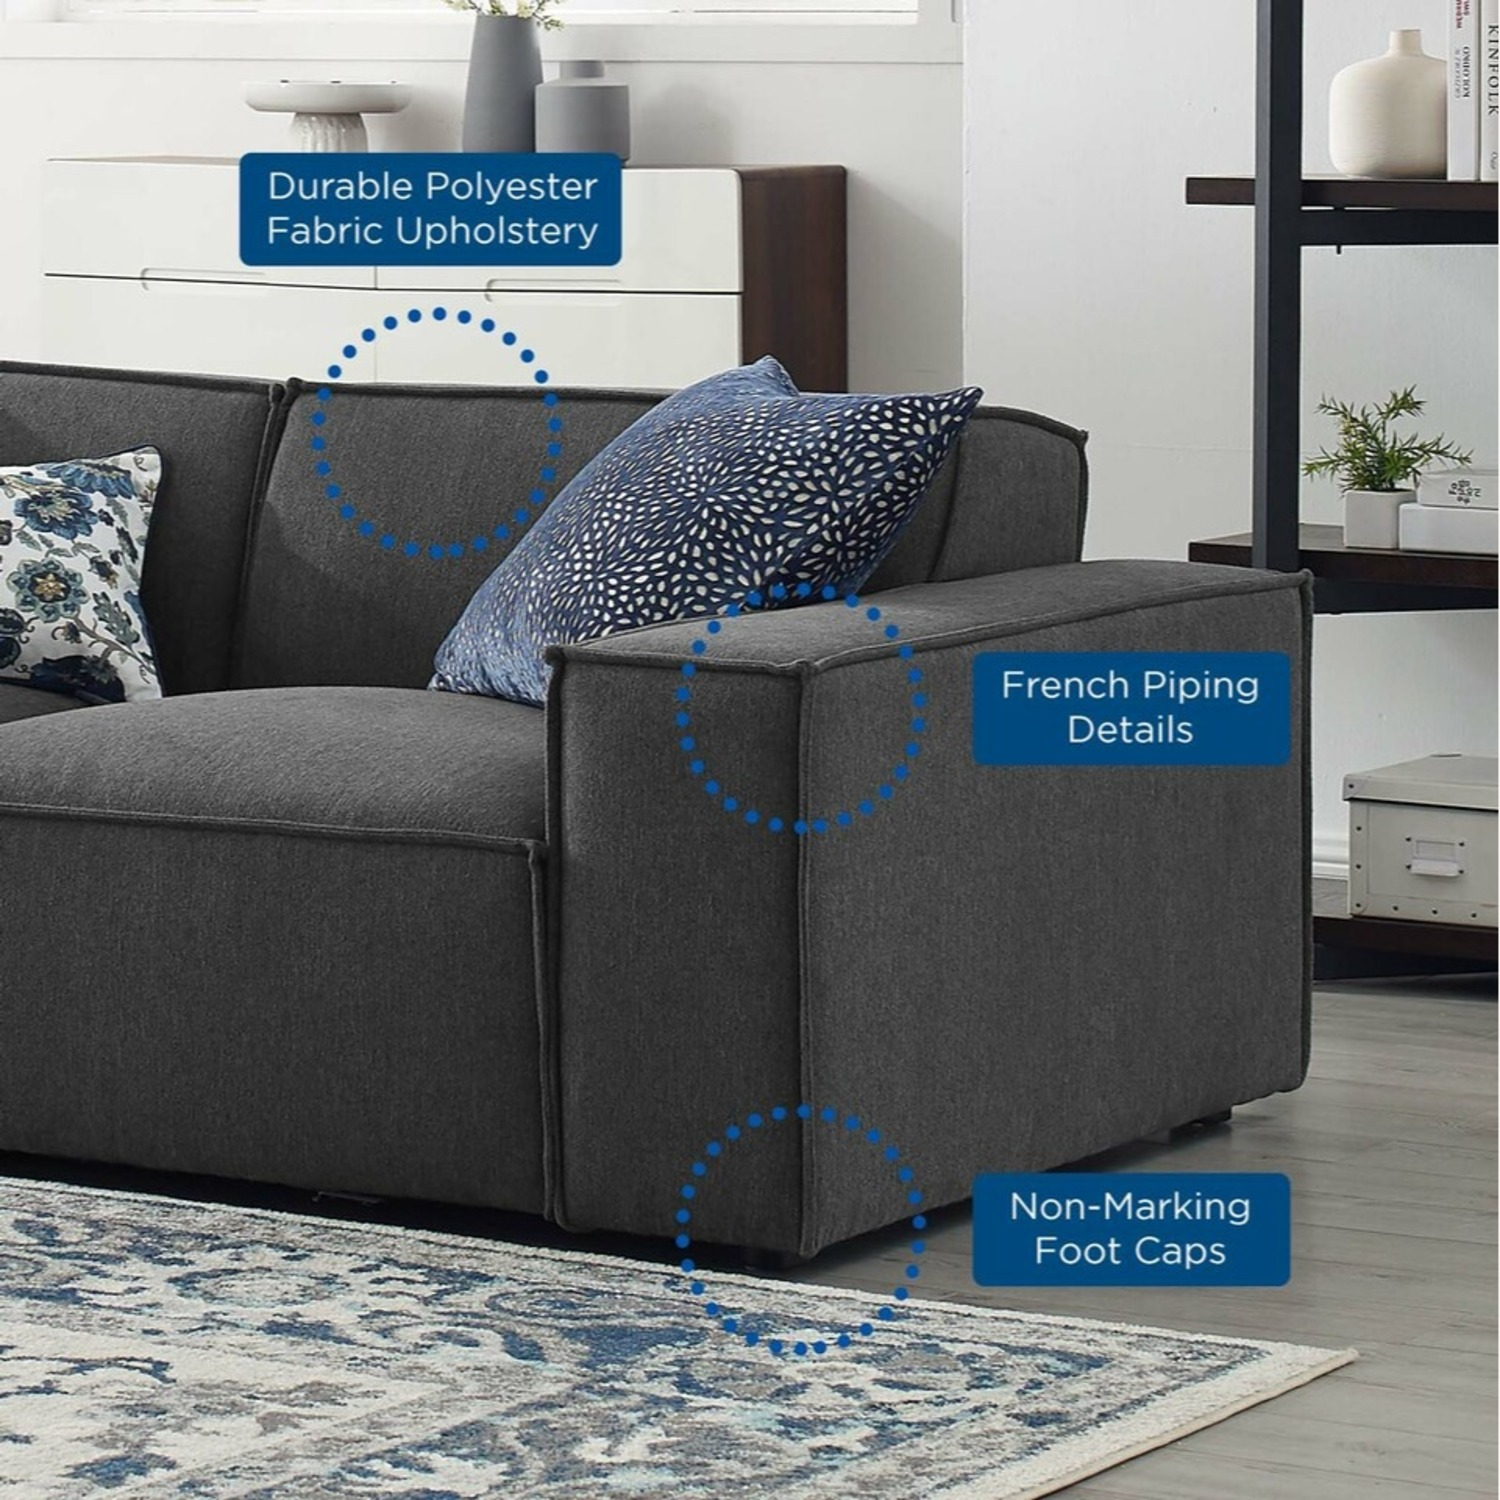 6-Piece Sectional Sofa In Charcoal Upholstery - image-9